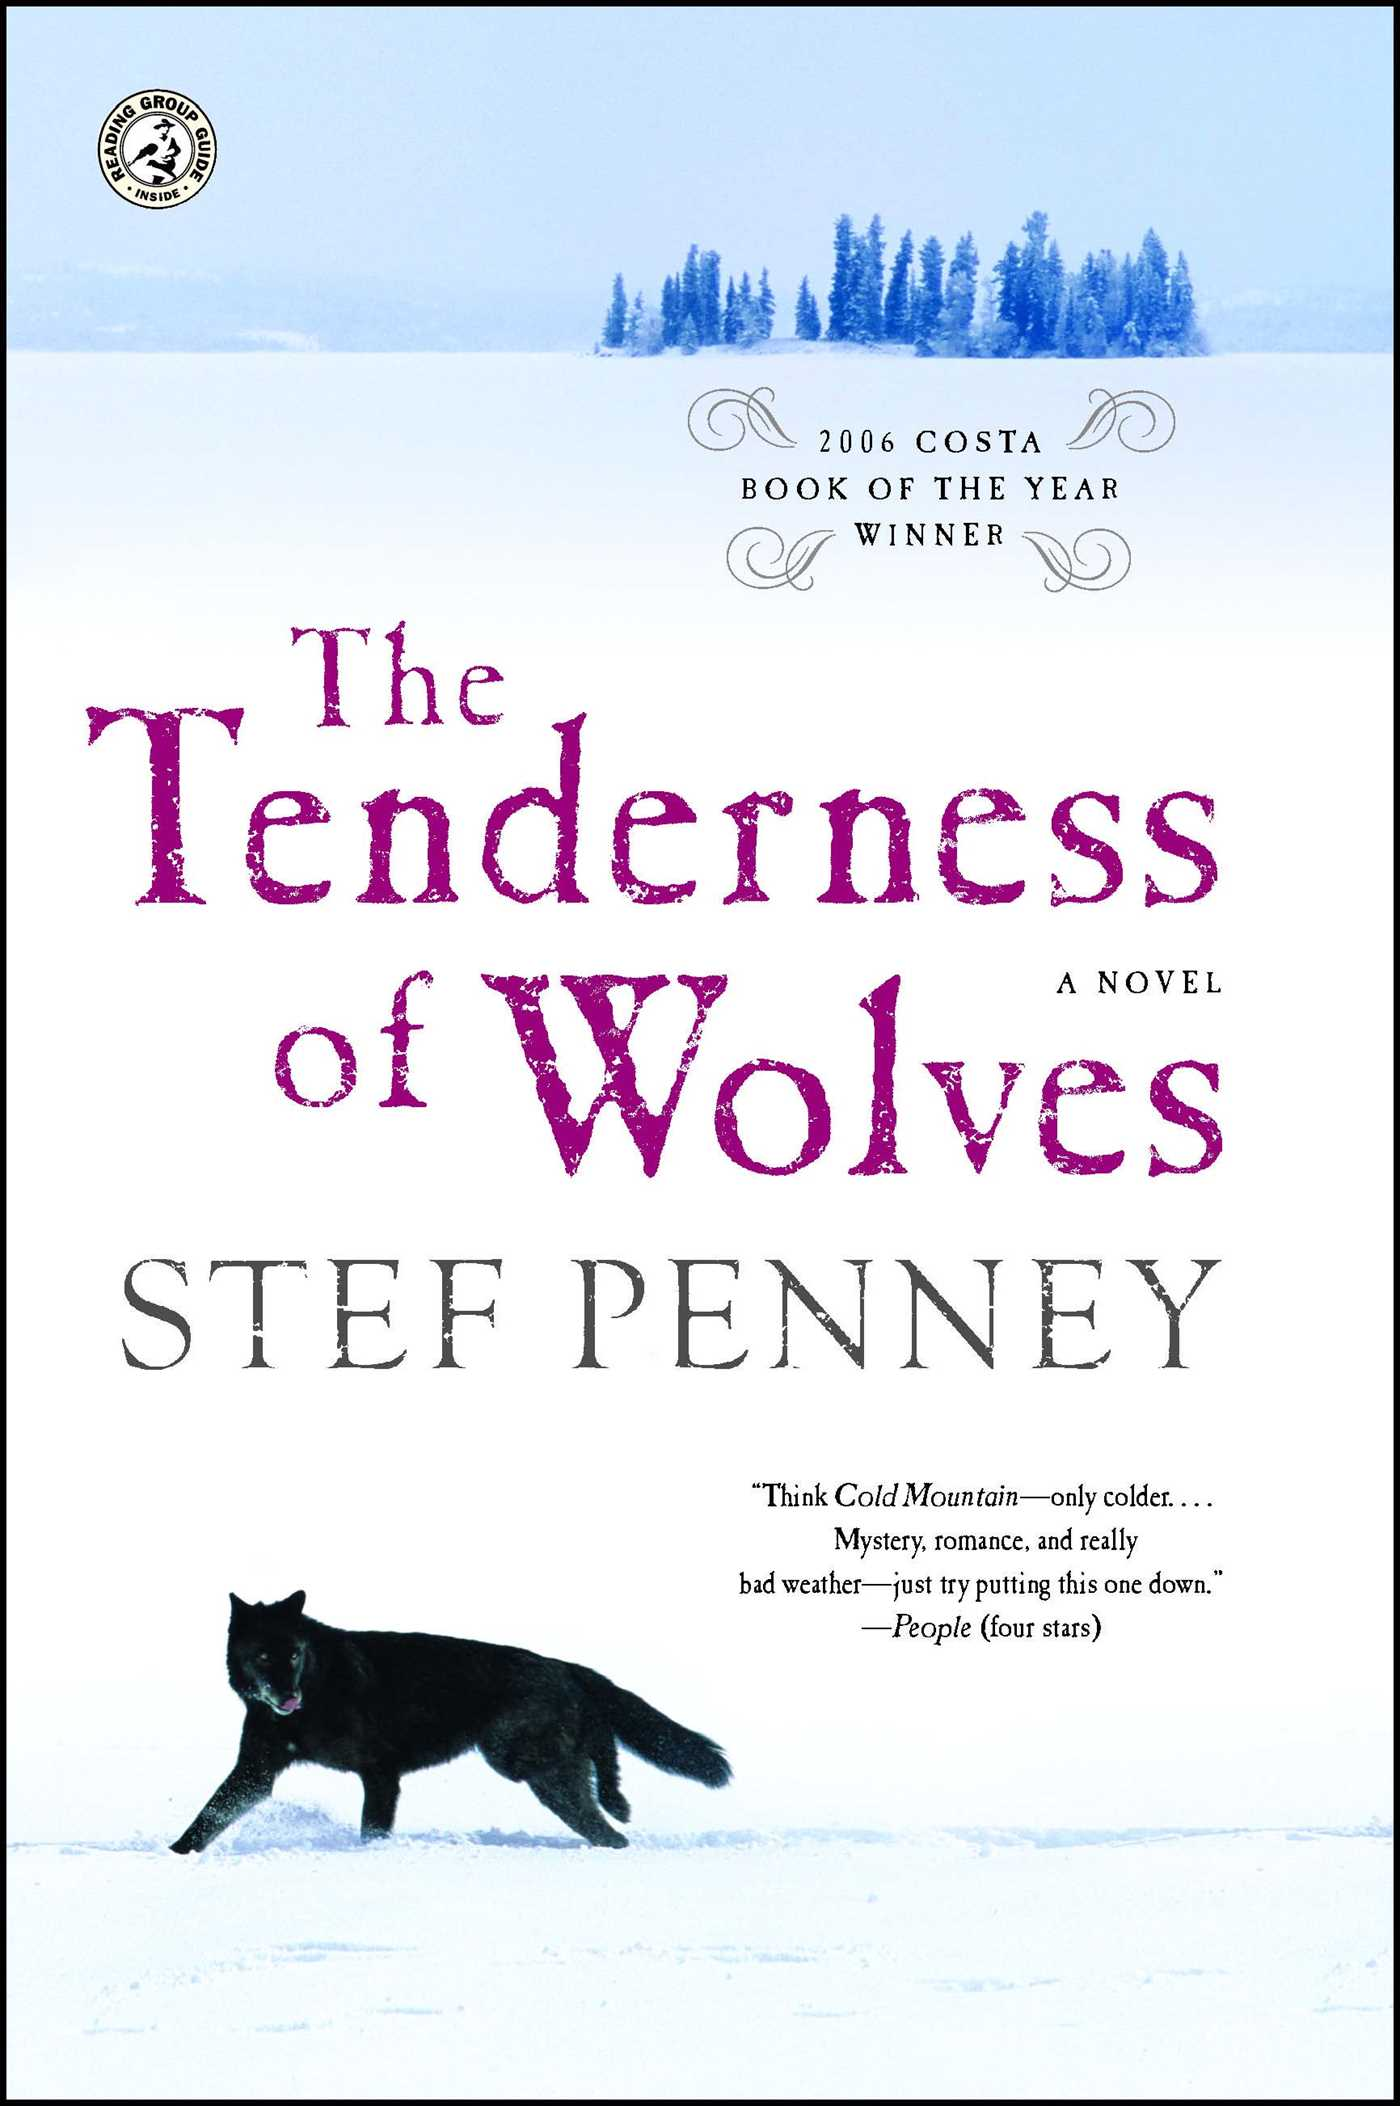 The tenderness of wolves 9781416571308 hr